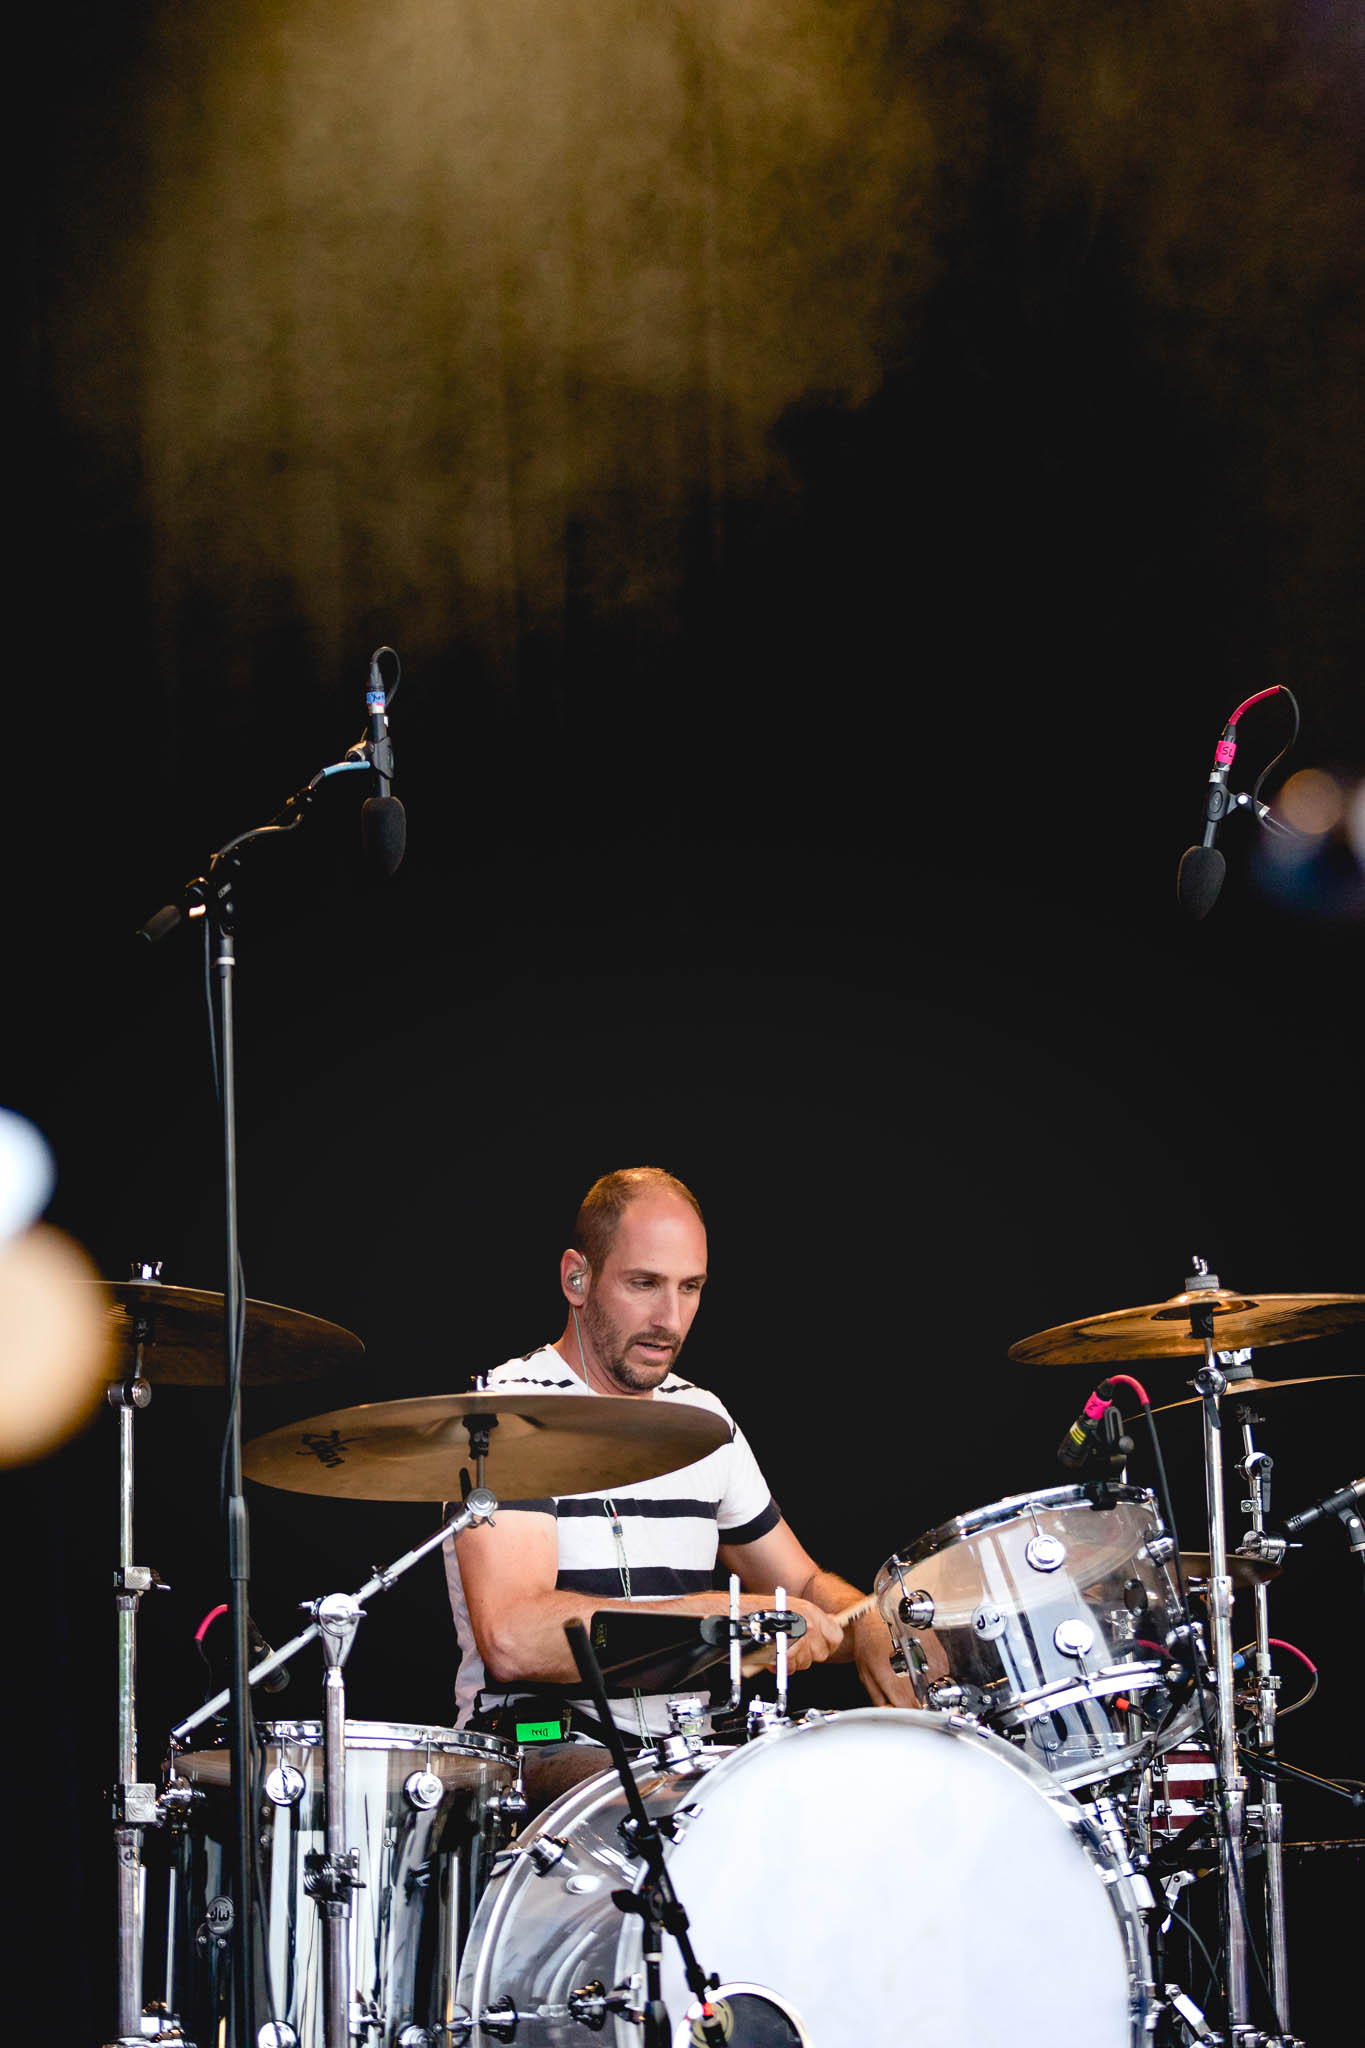 Drummer Dan Konopka. Photo: Lmsorenson.net